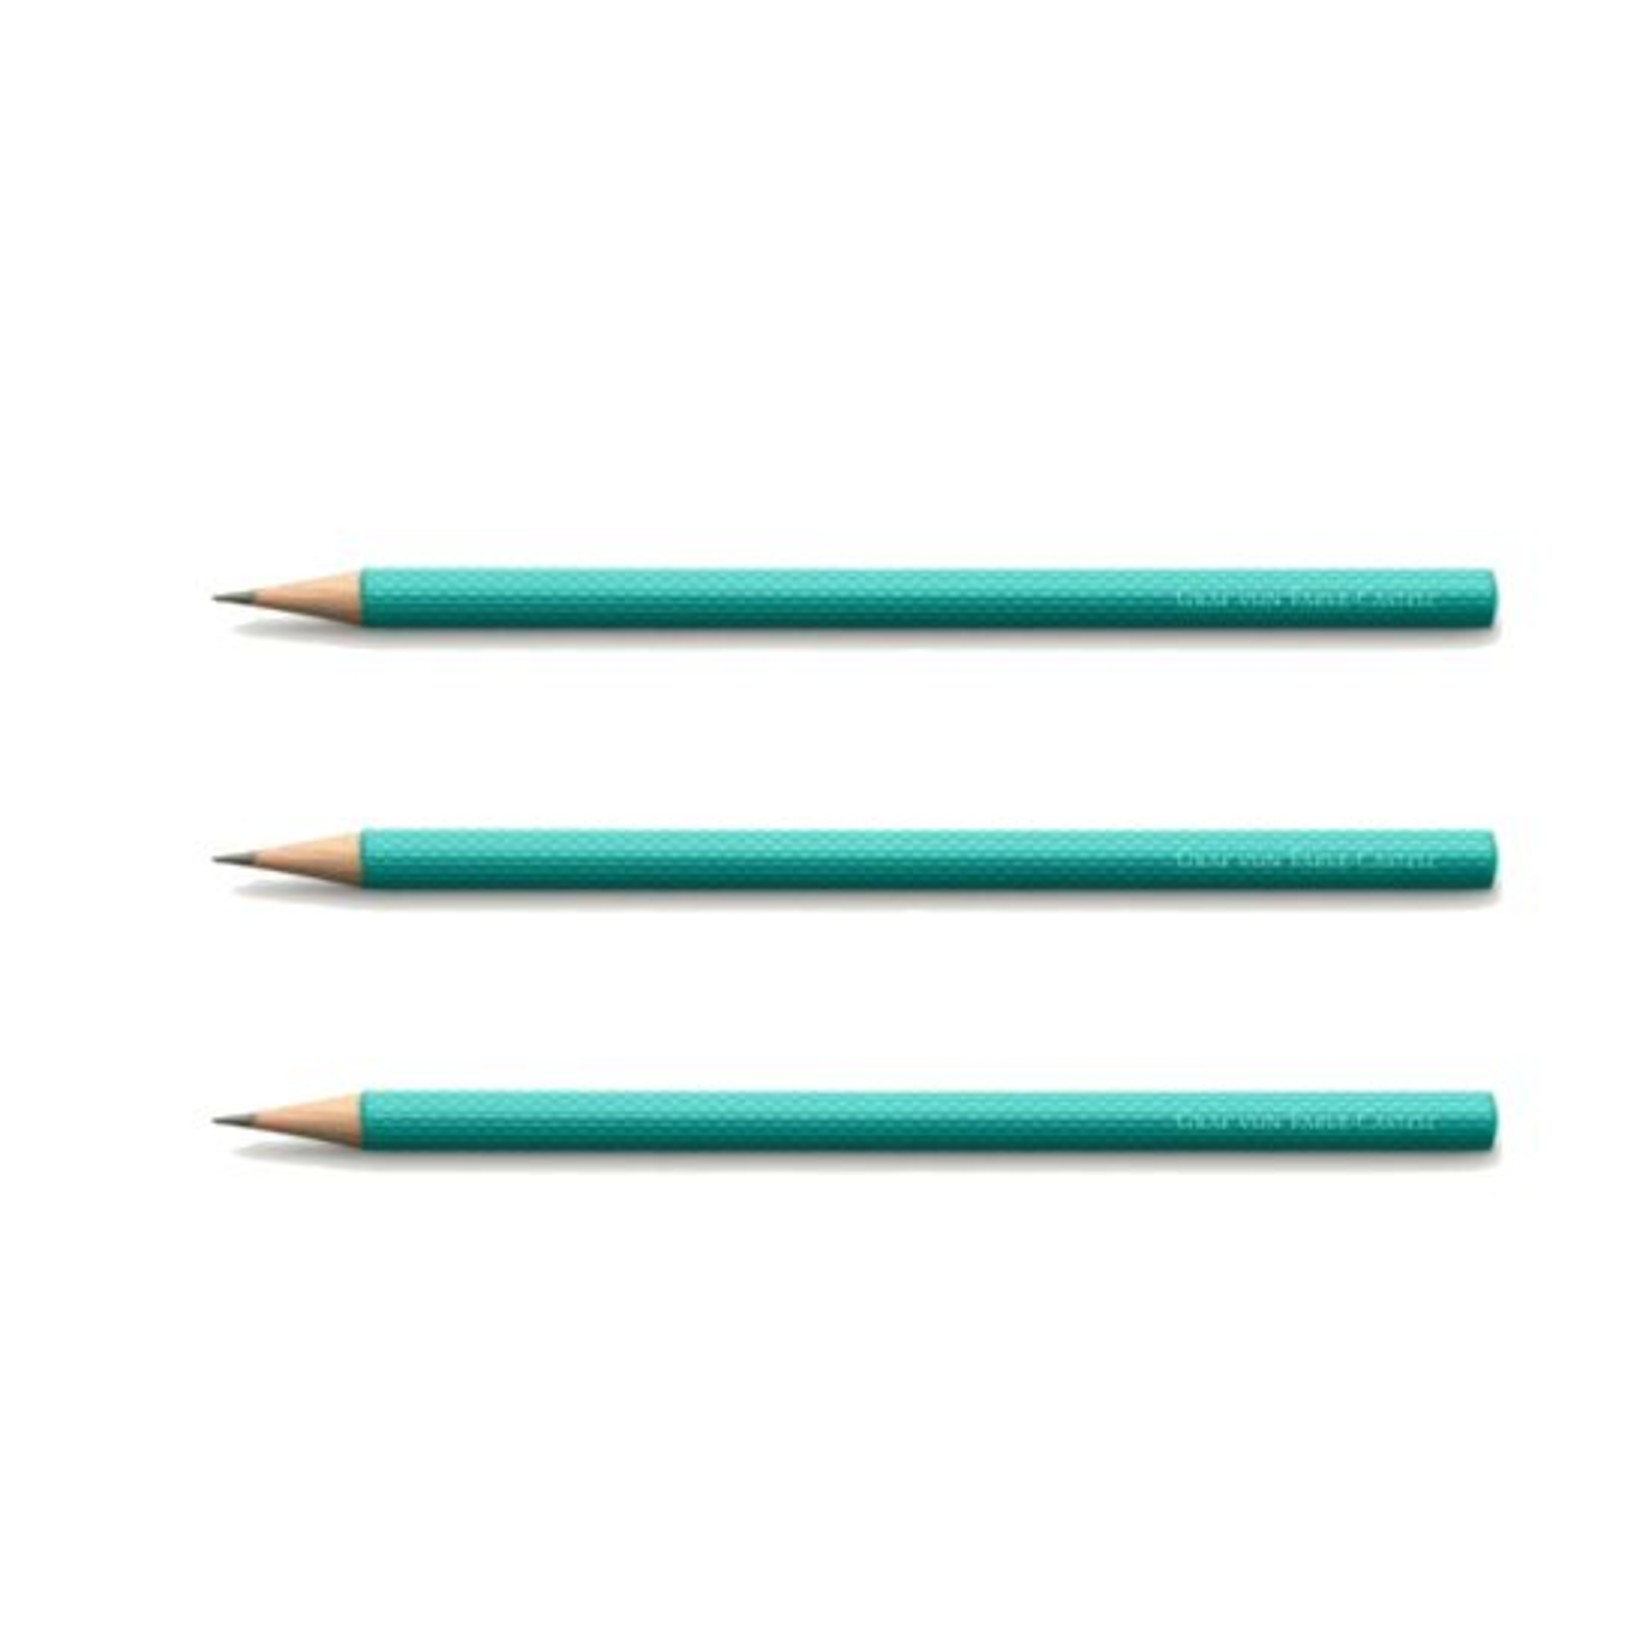 Faber-Castell Bleistifte Farbwelten Guilloche Turquoise 3Stk